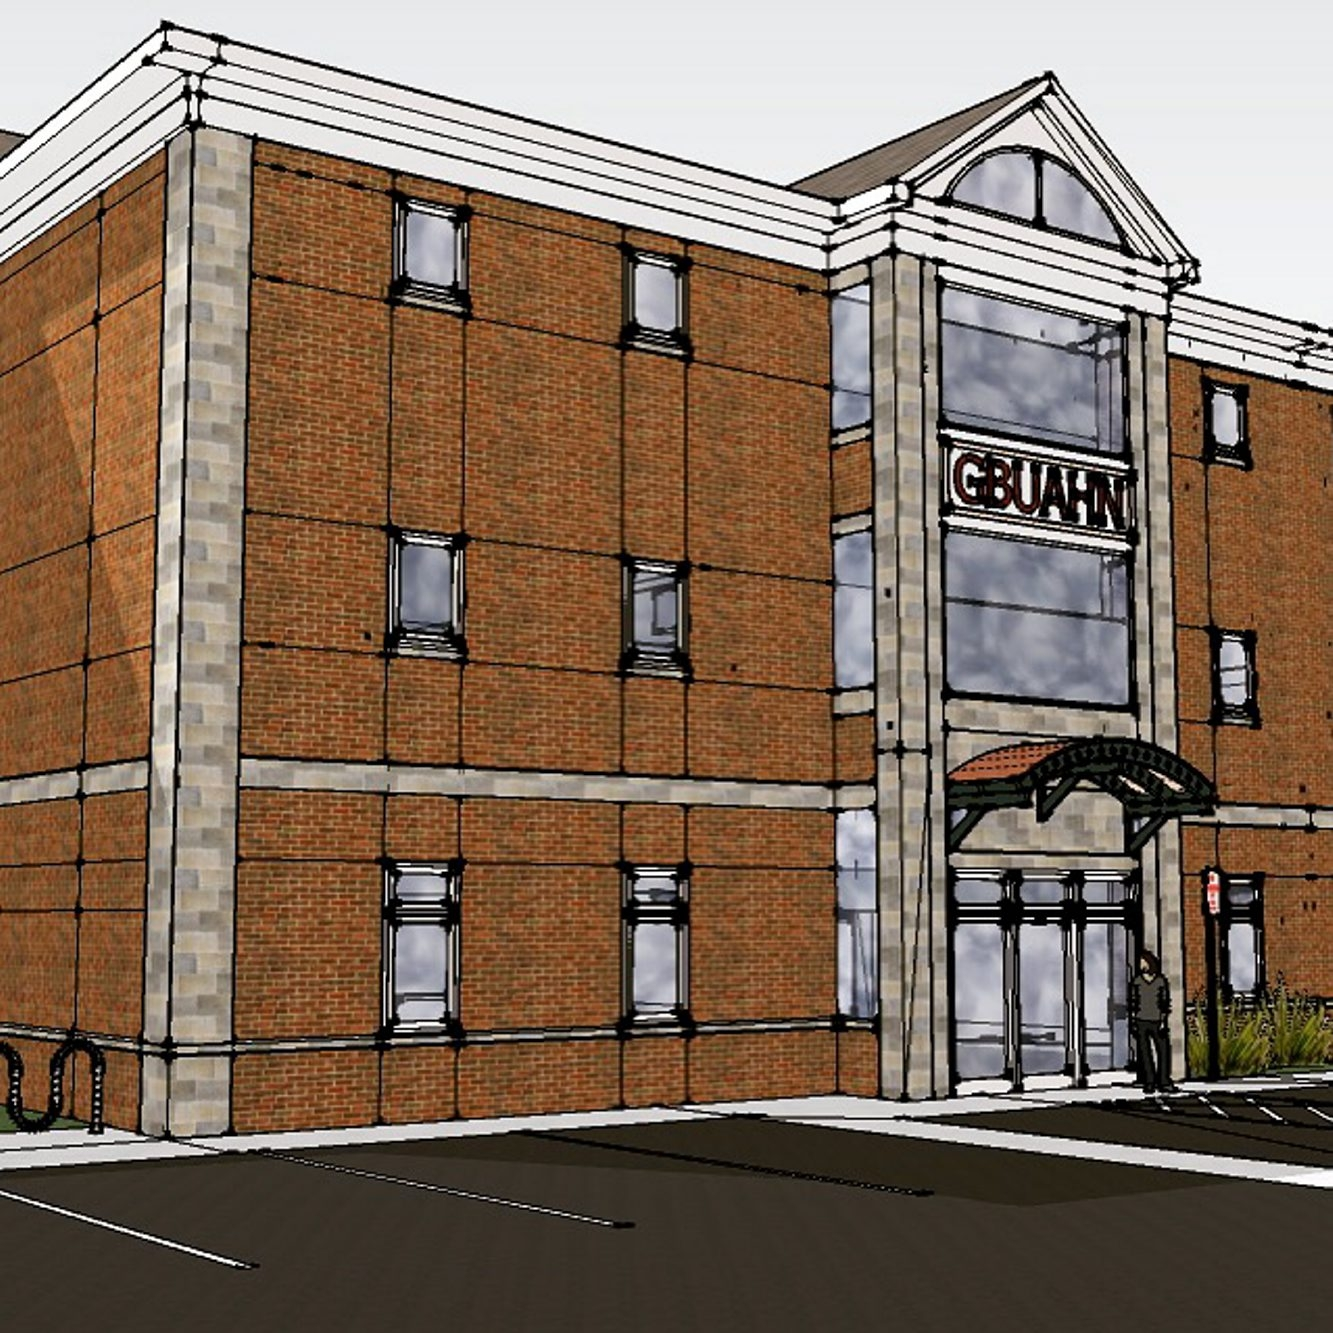 An artist's sketch of the proposed building on Seventh Street.